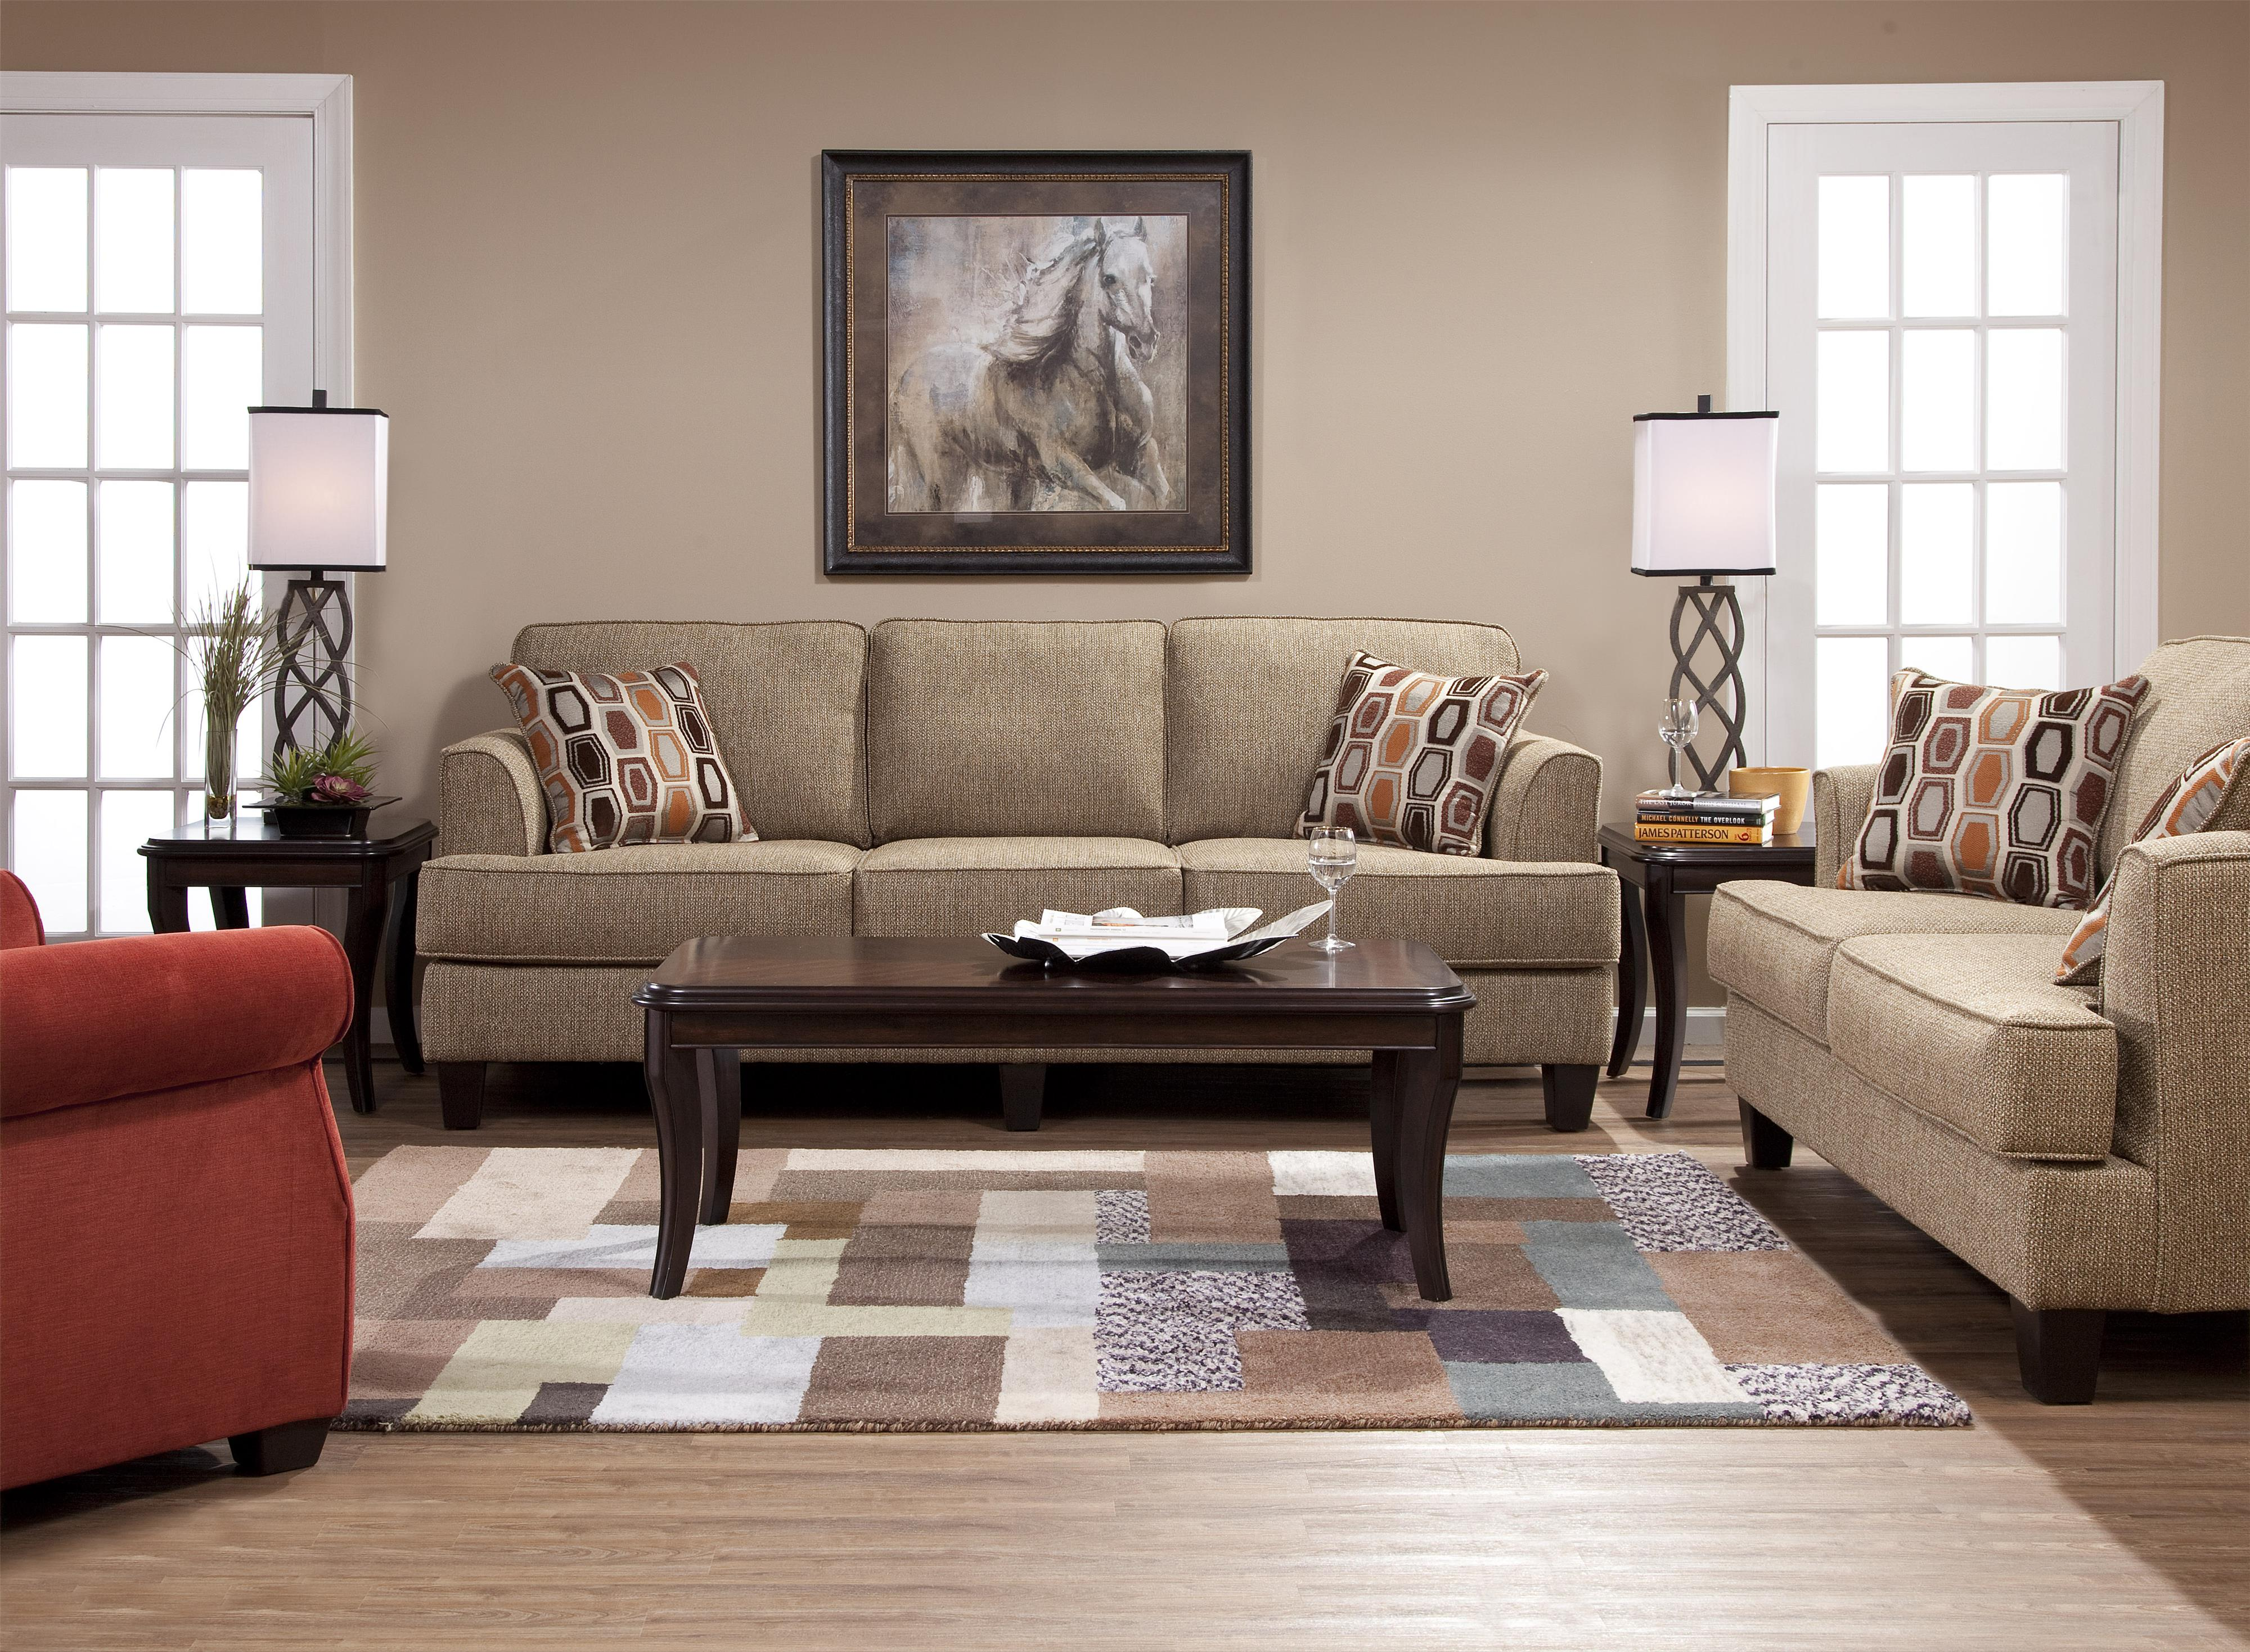 Hughes Furniture 5600 Transitional Love Seat With Accent Pillows   Wayside  Furniture   Love Seats